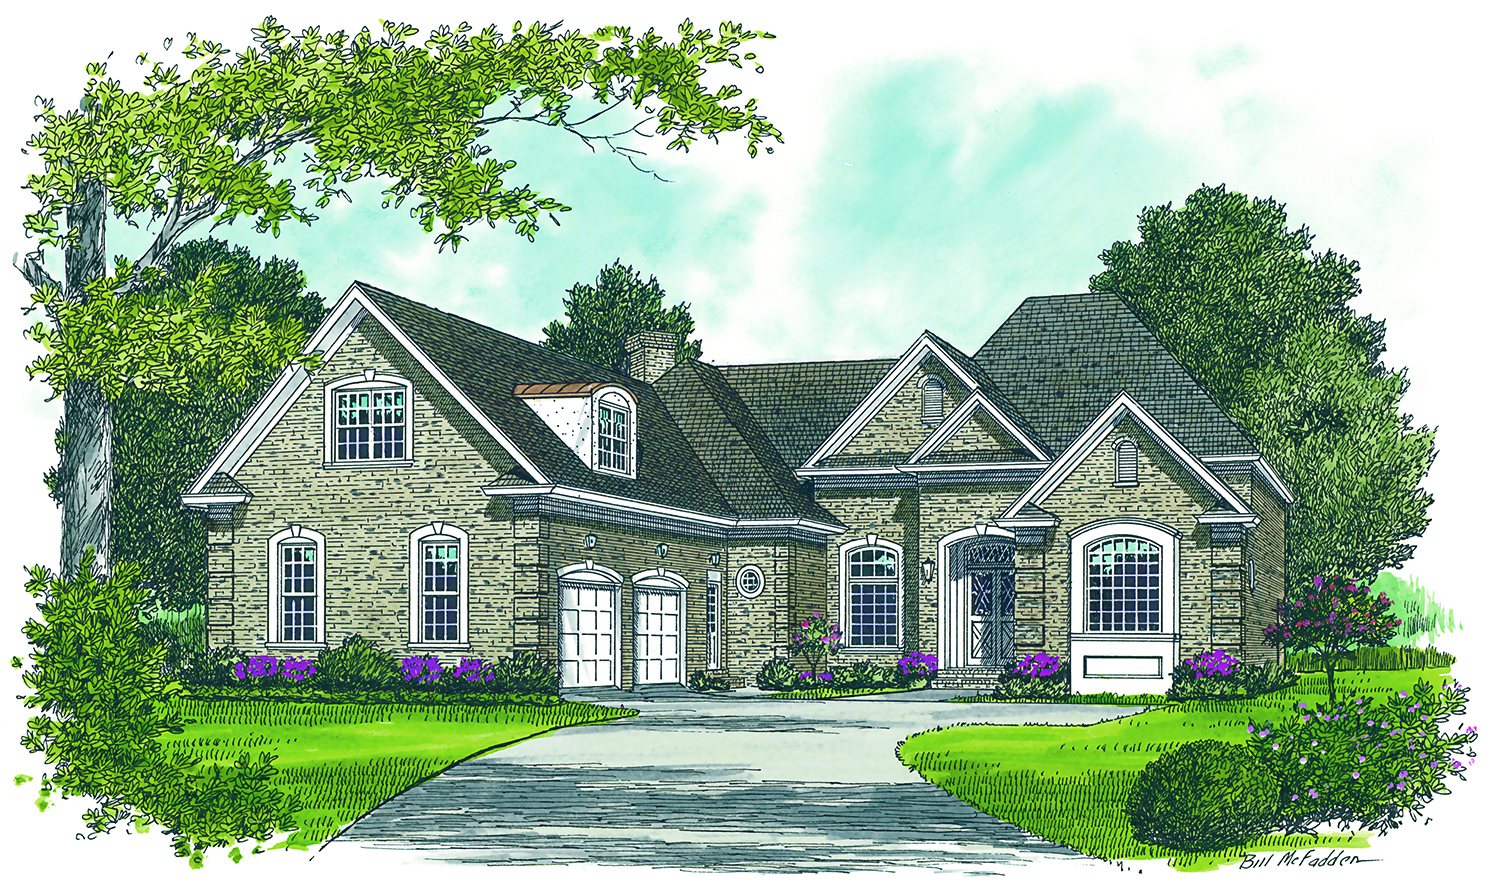 2700 Sq Ft Ranch House Plan 180 1011 3 Bedrm Home